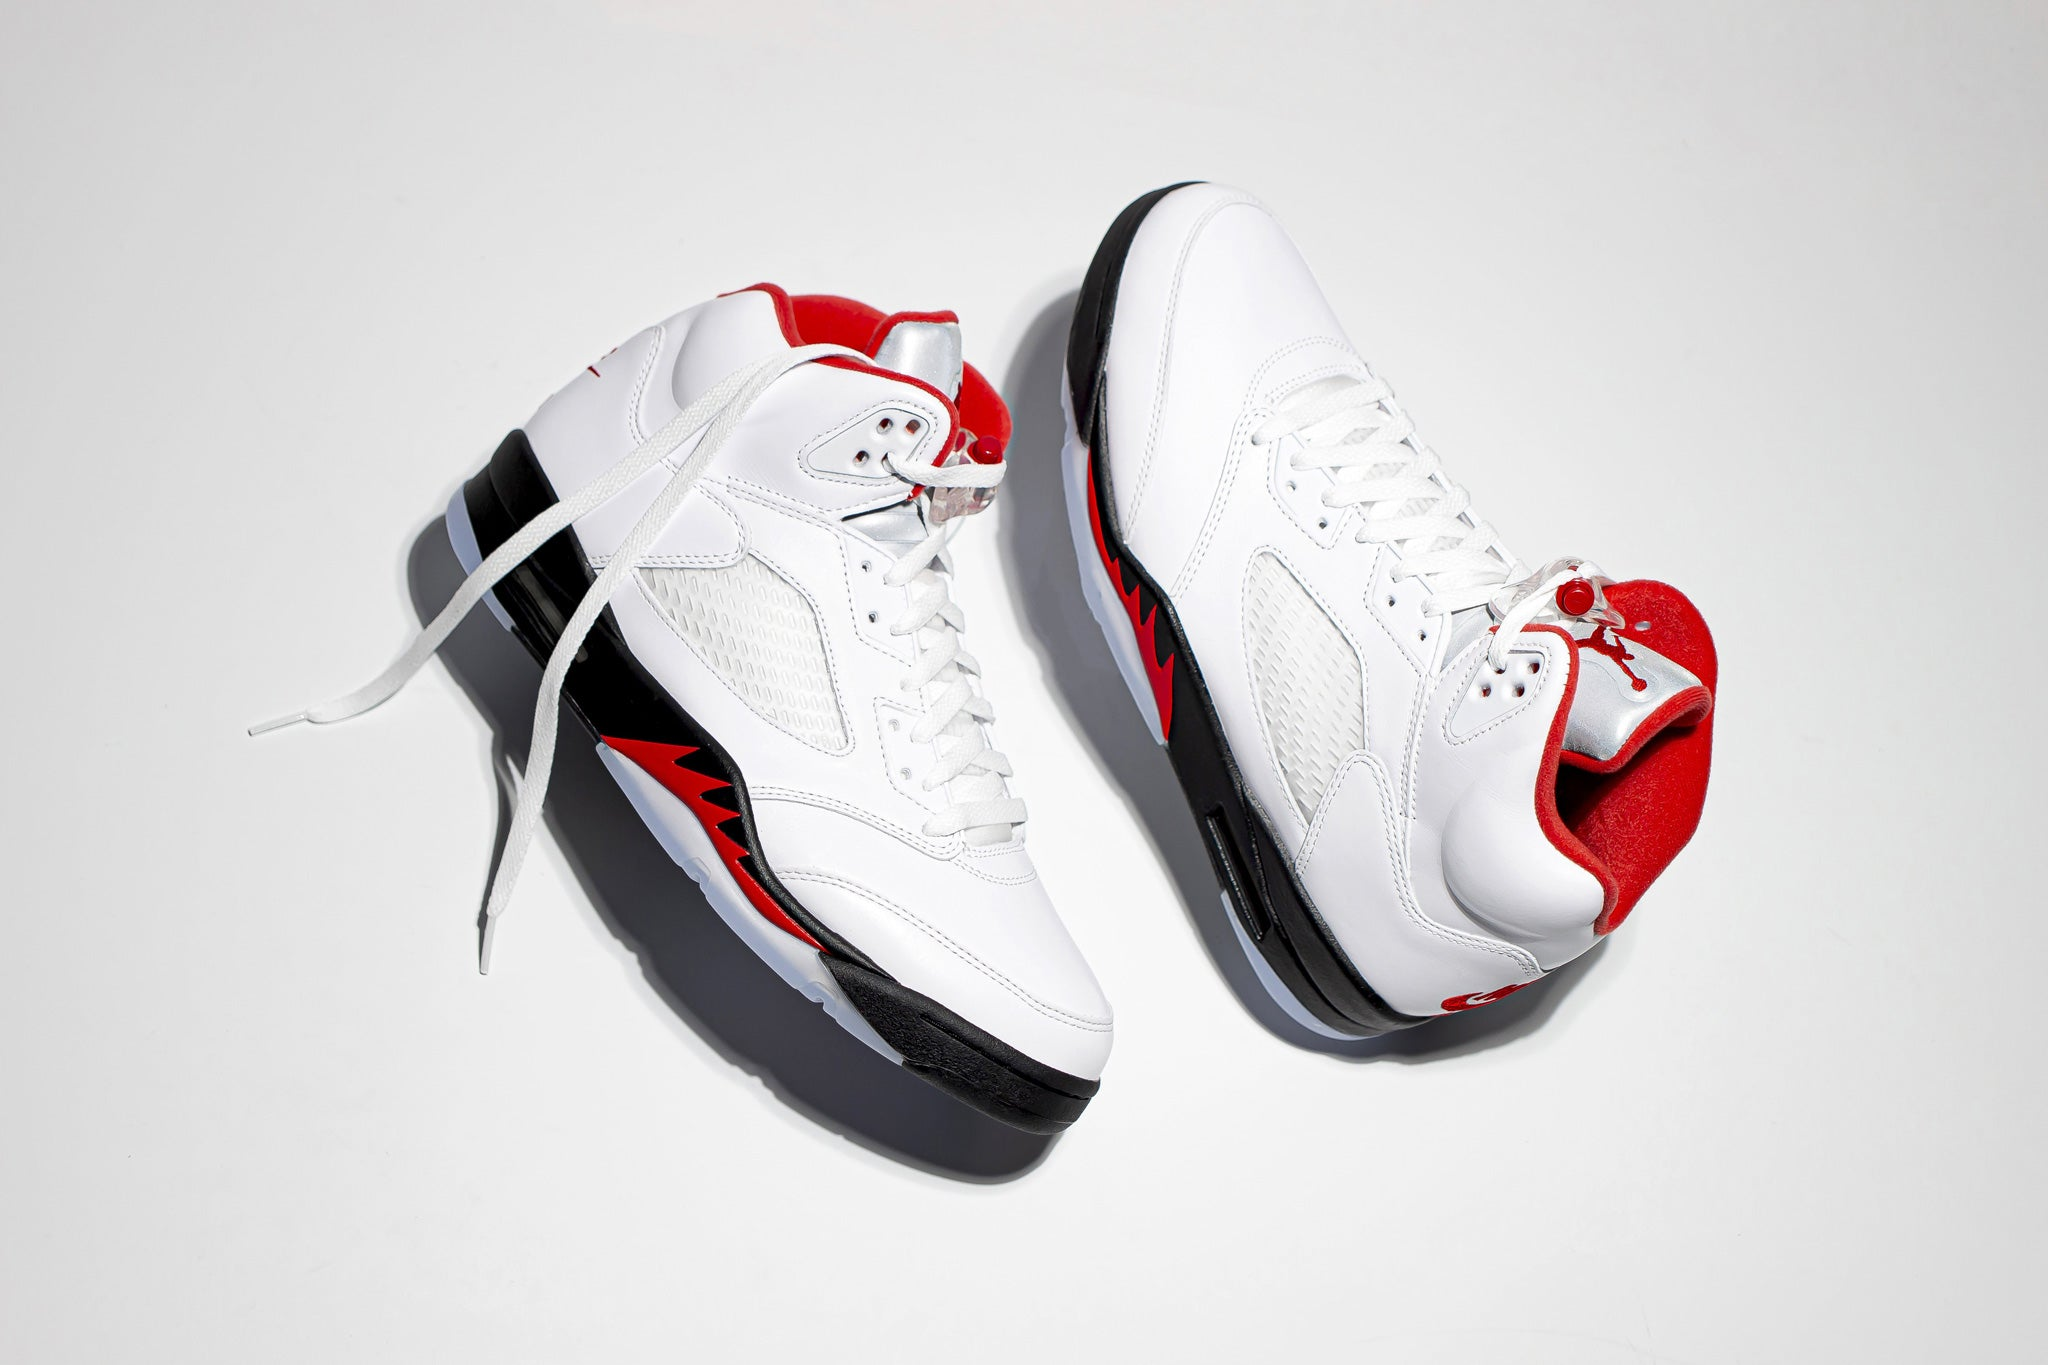 Profile view of Jordan 5 Retro Fire Red 2020 hi top sneaker